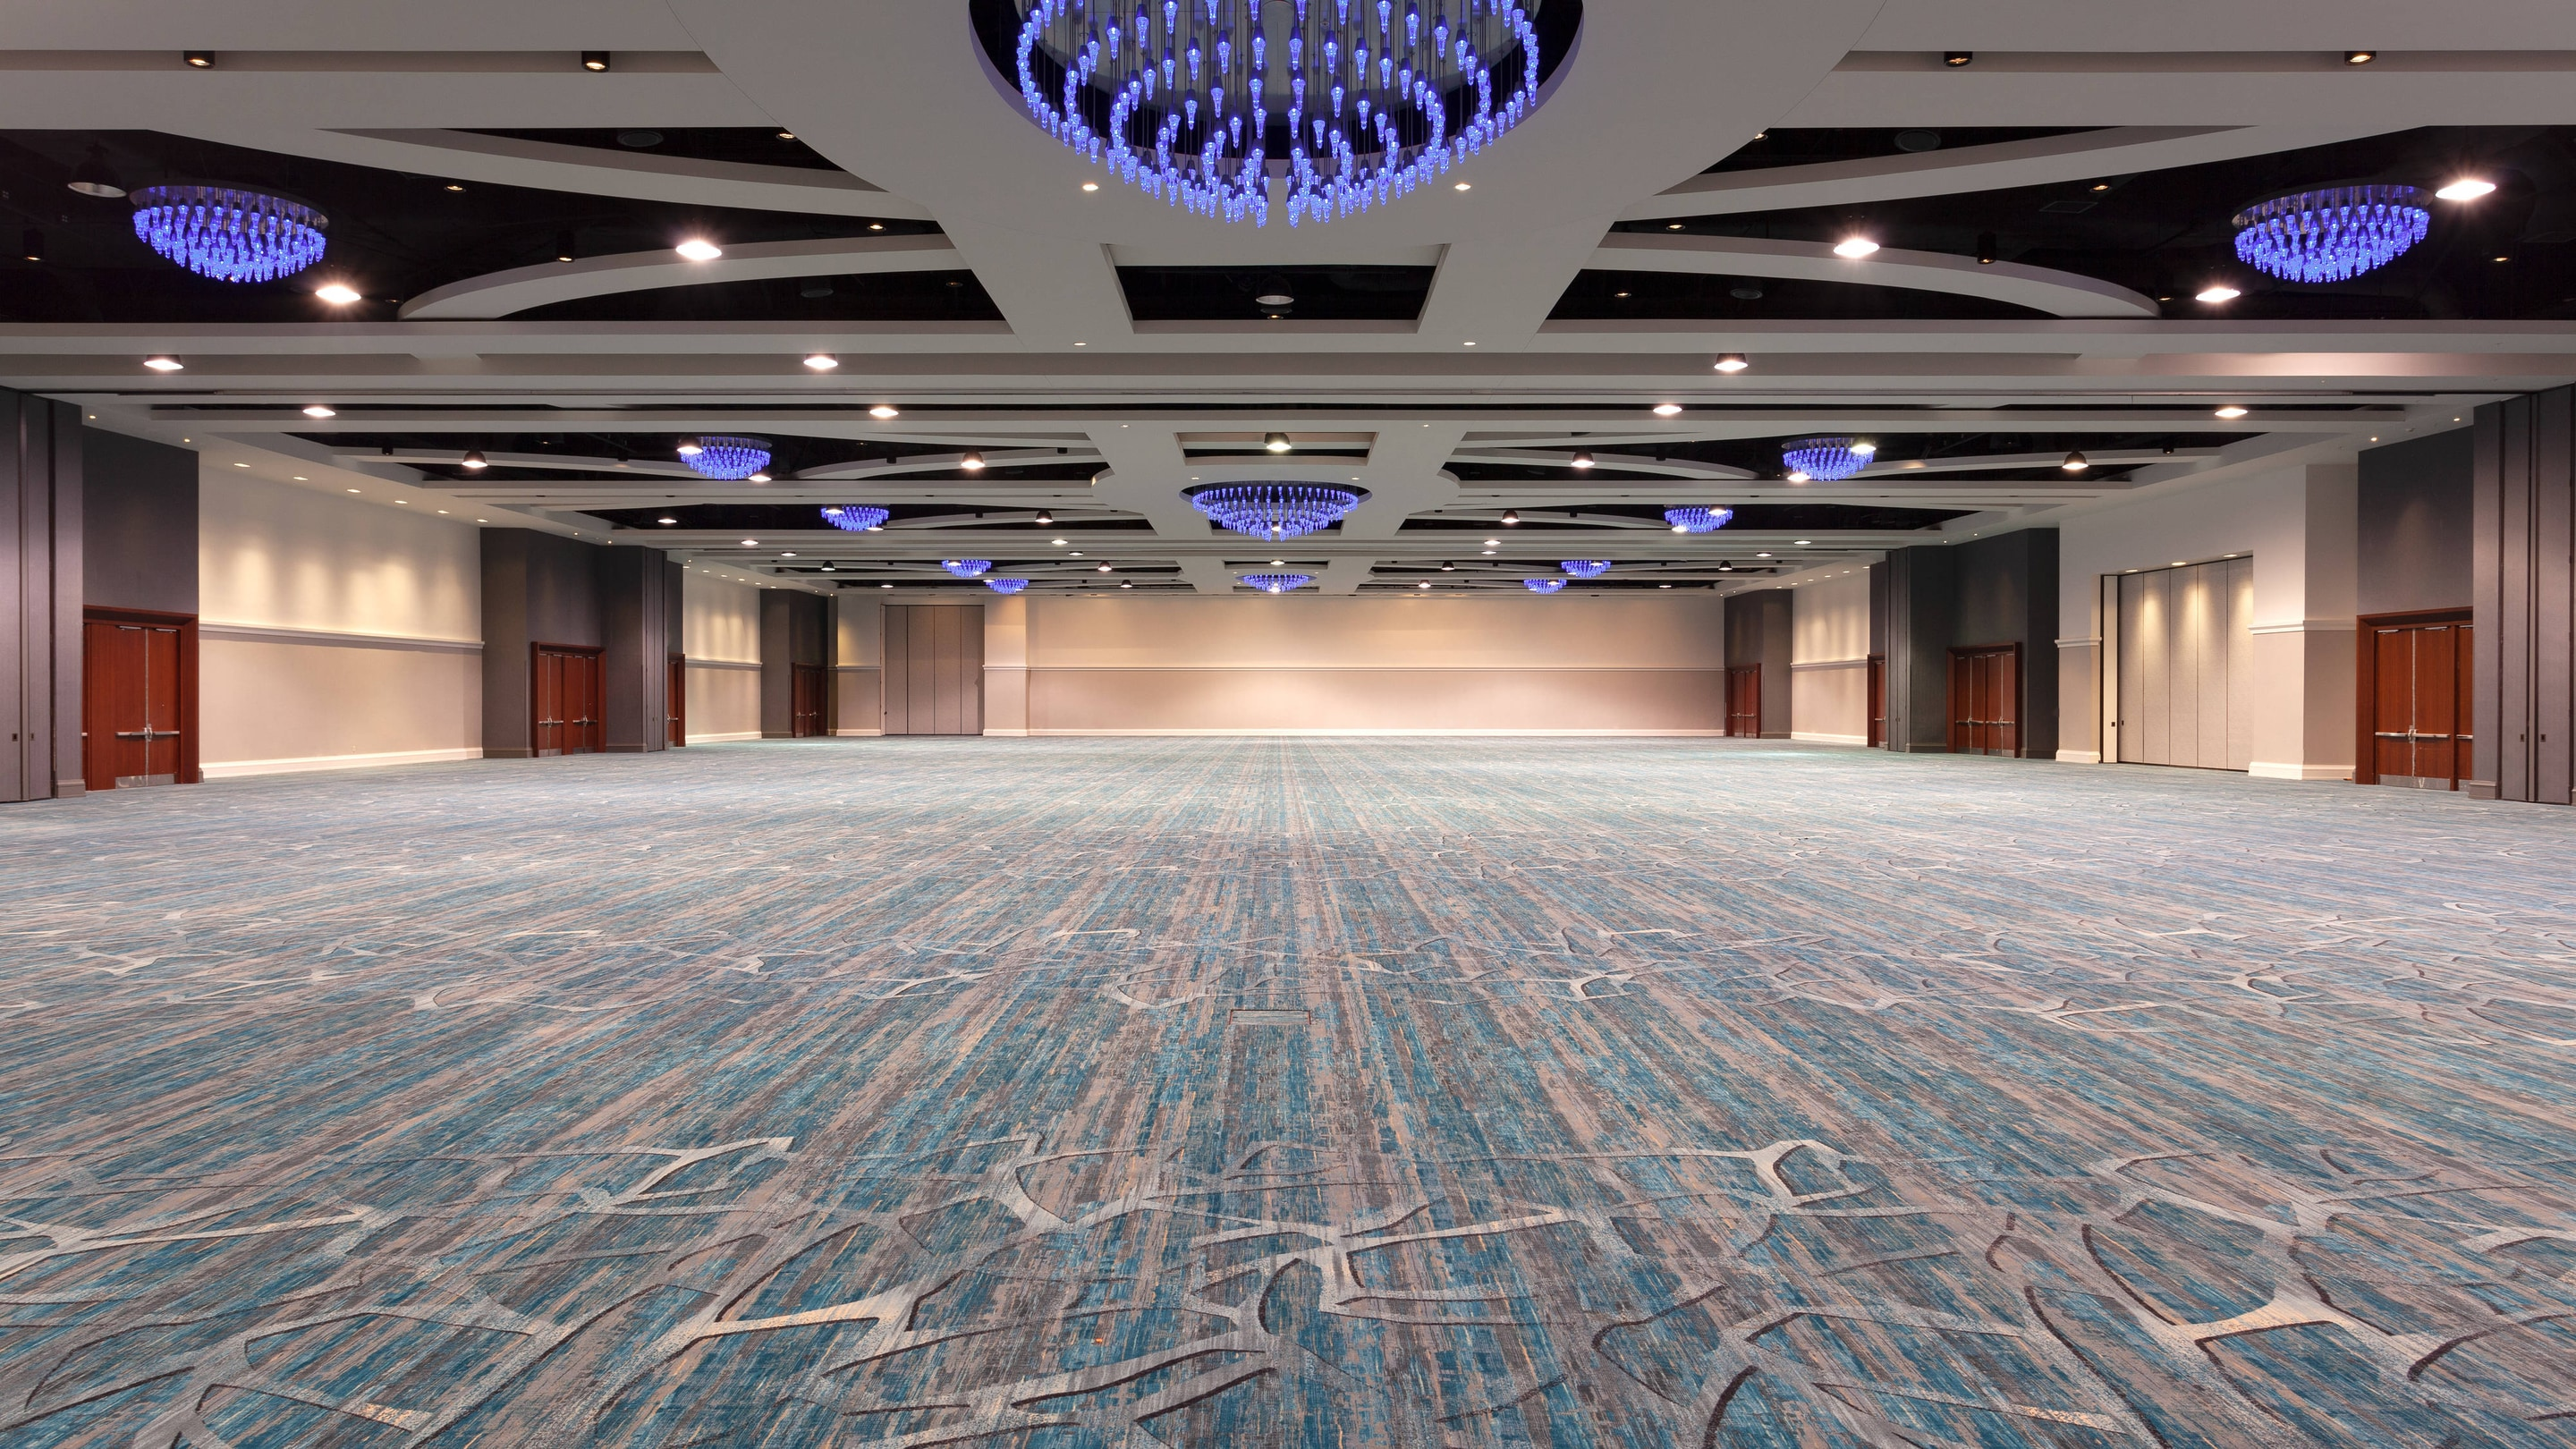 Large empty ballroom with blue lights above